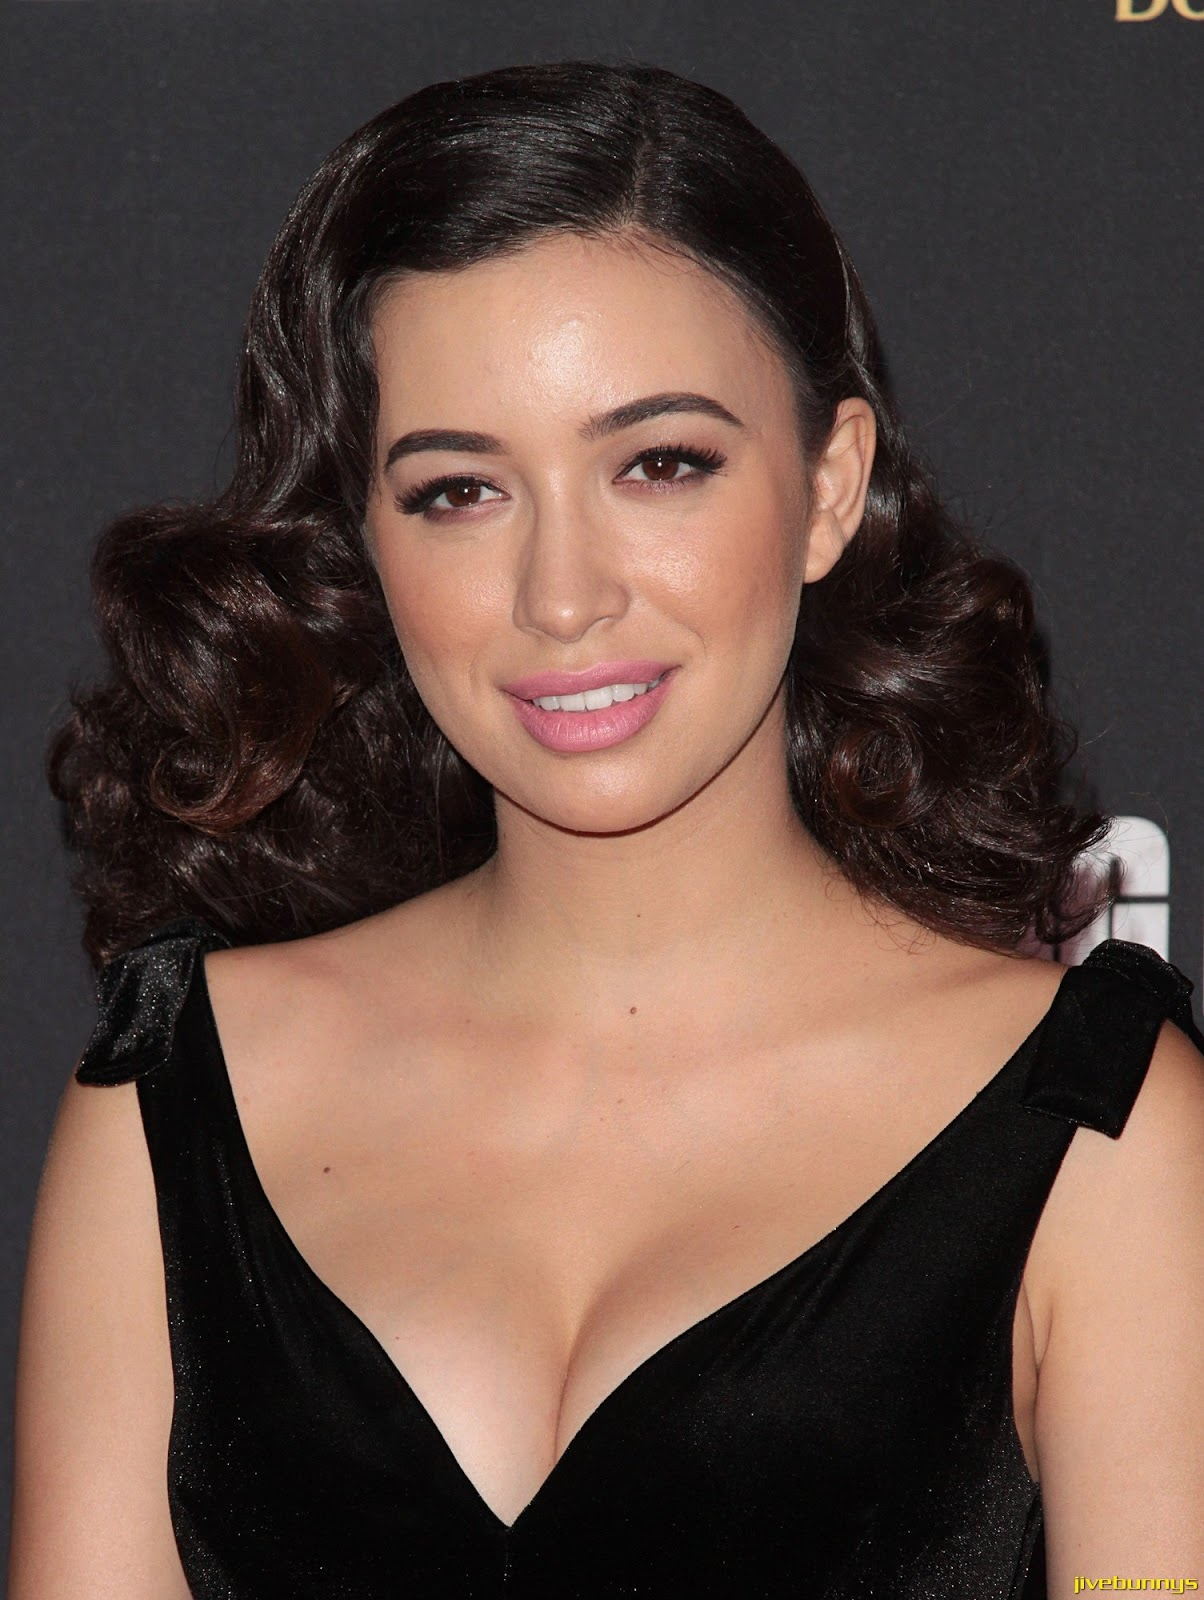 Hacked Christian Serratos nude photos 2019